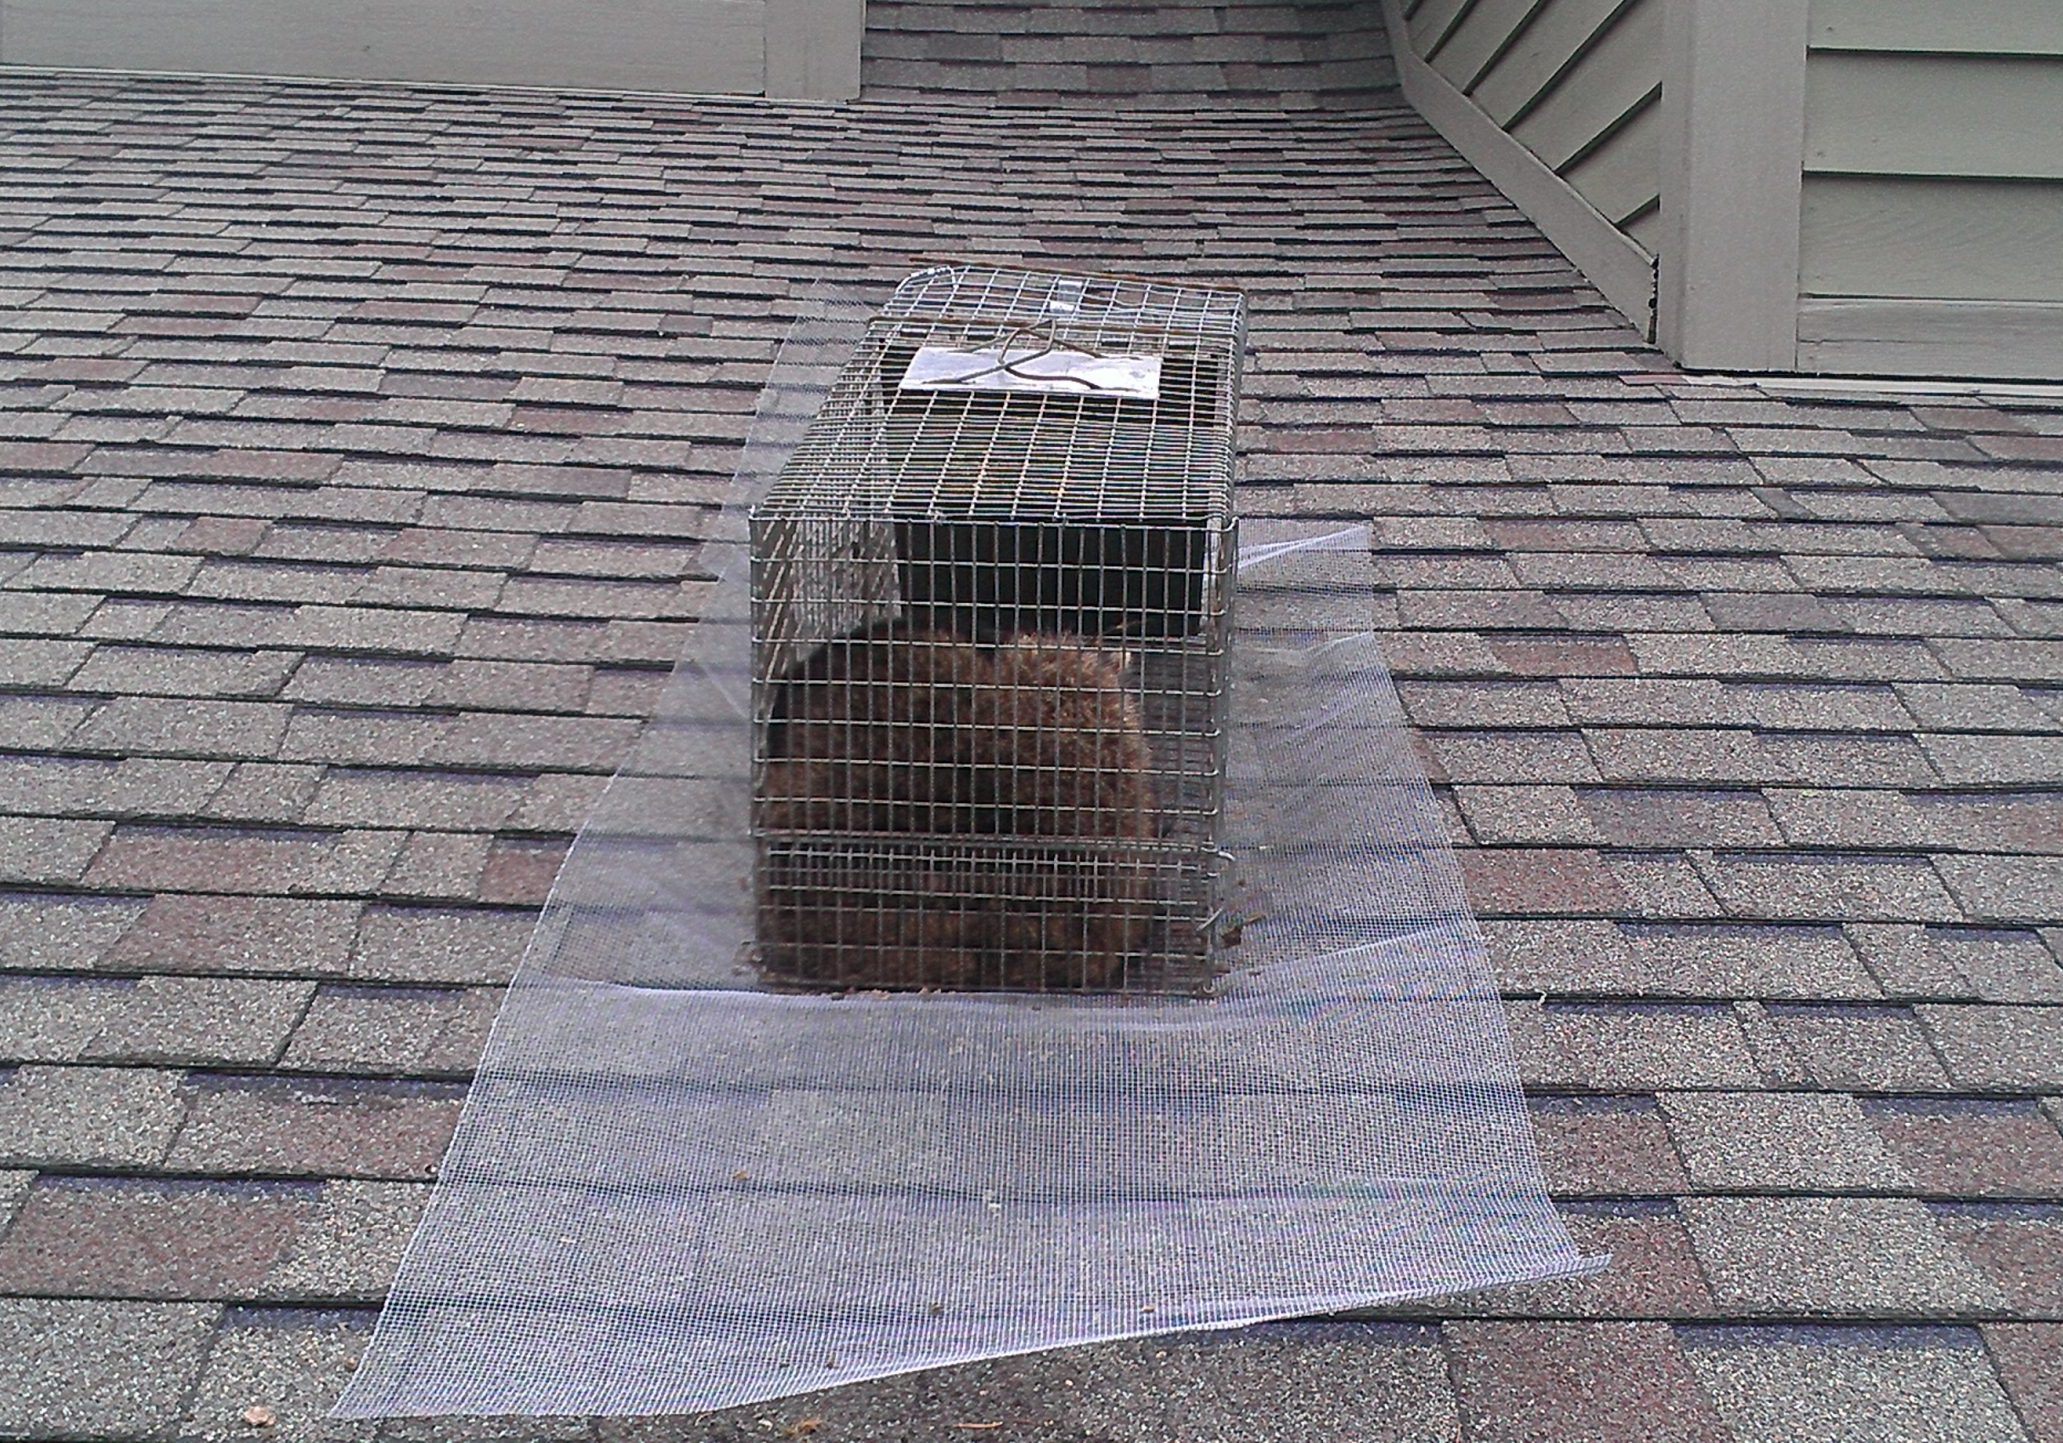 How to Catch a raccoon on a roof